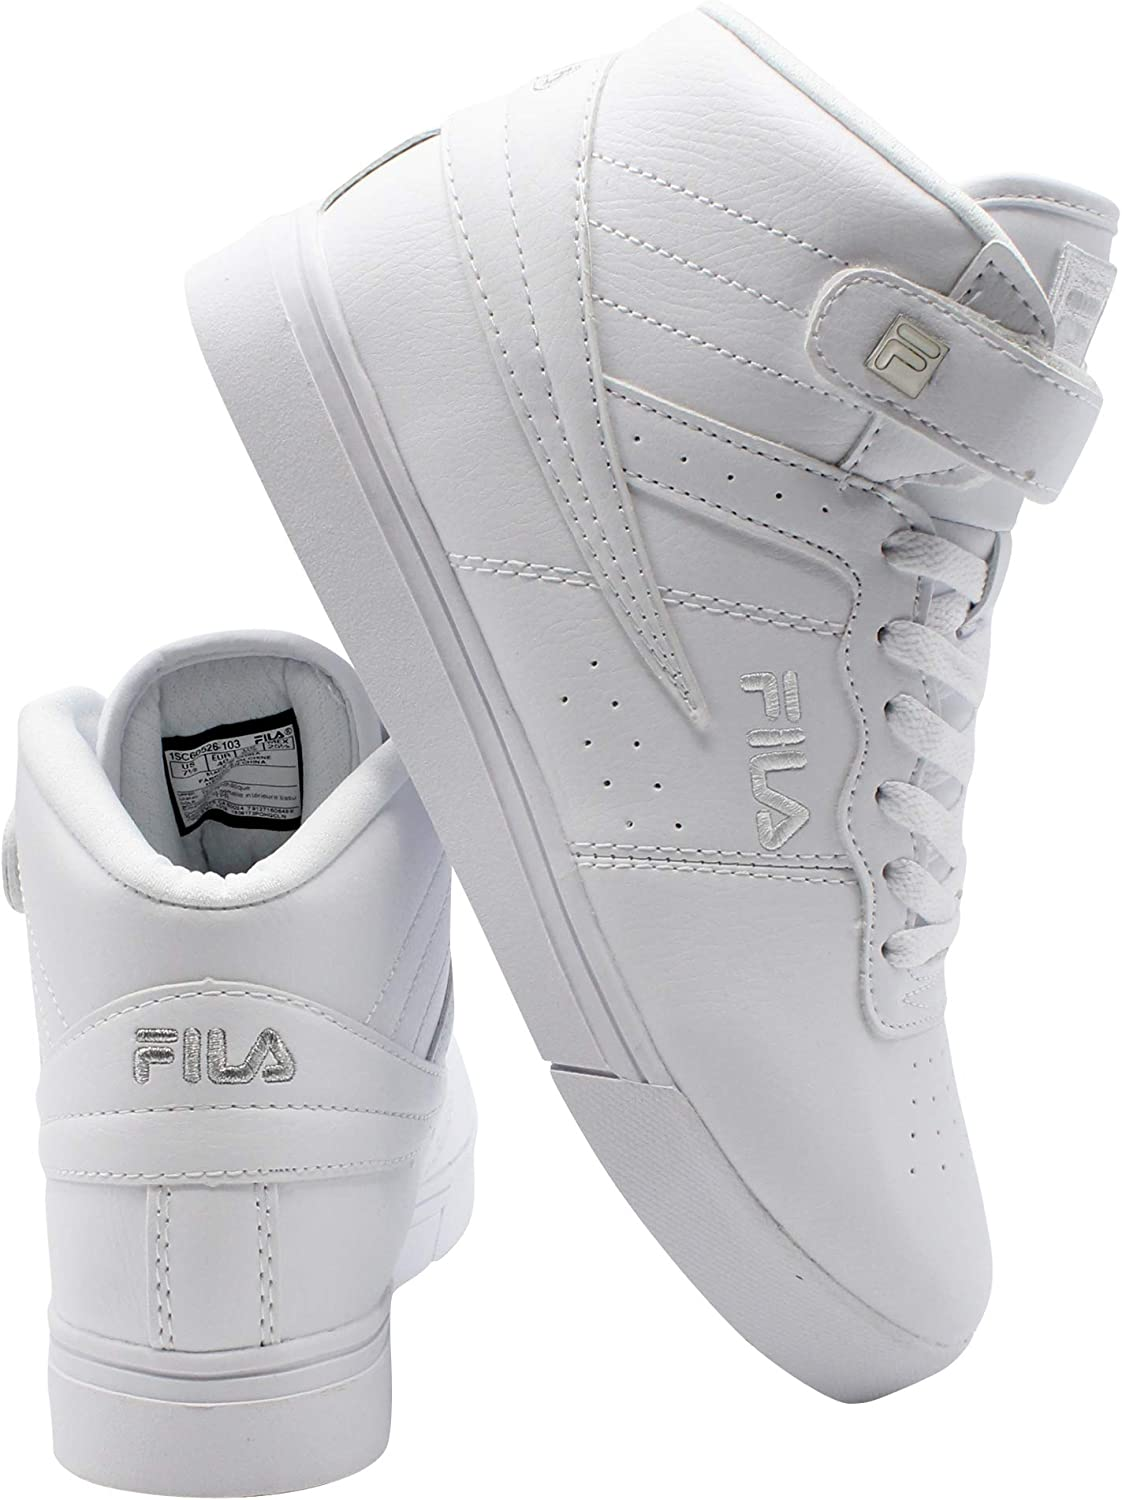 81eda97c6 Fila Men's Vulc 13 13 13 Mid Plus Fashion Sneakers, White, Microsuede,  Rubber, 13 M 79da1a